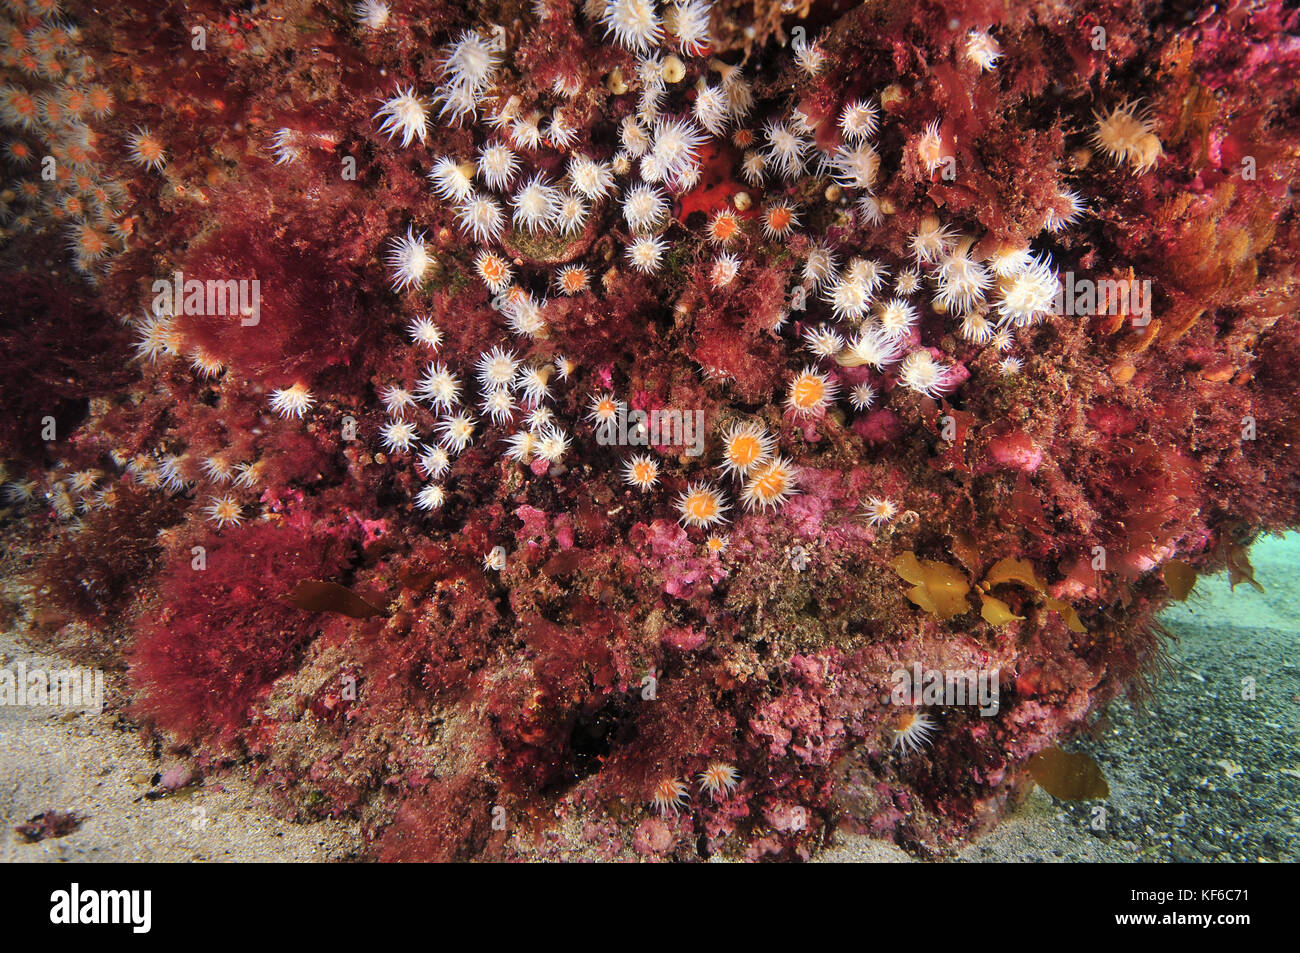 Garden of white-striped anemone Anthothoe albocincta on vertical rock face covered with pink algae. - Stock Image